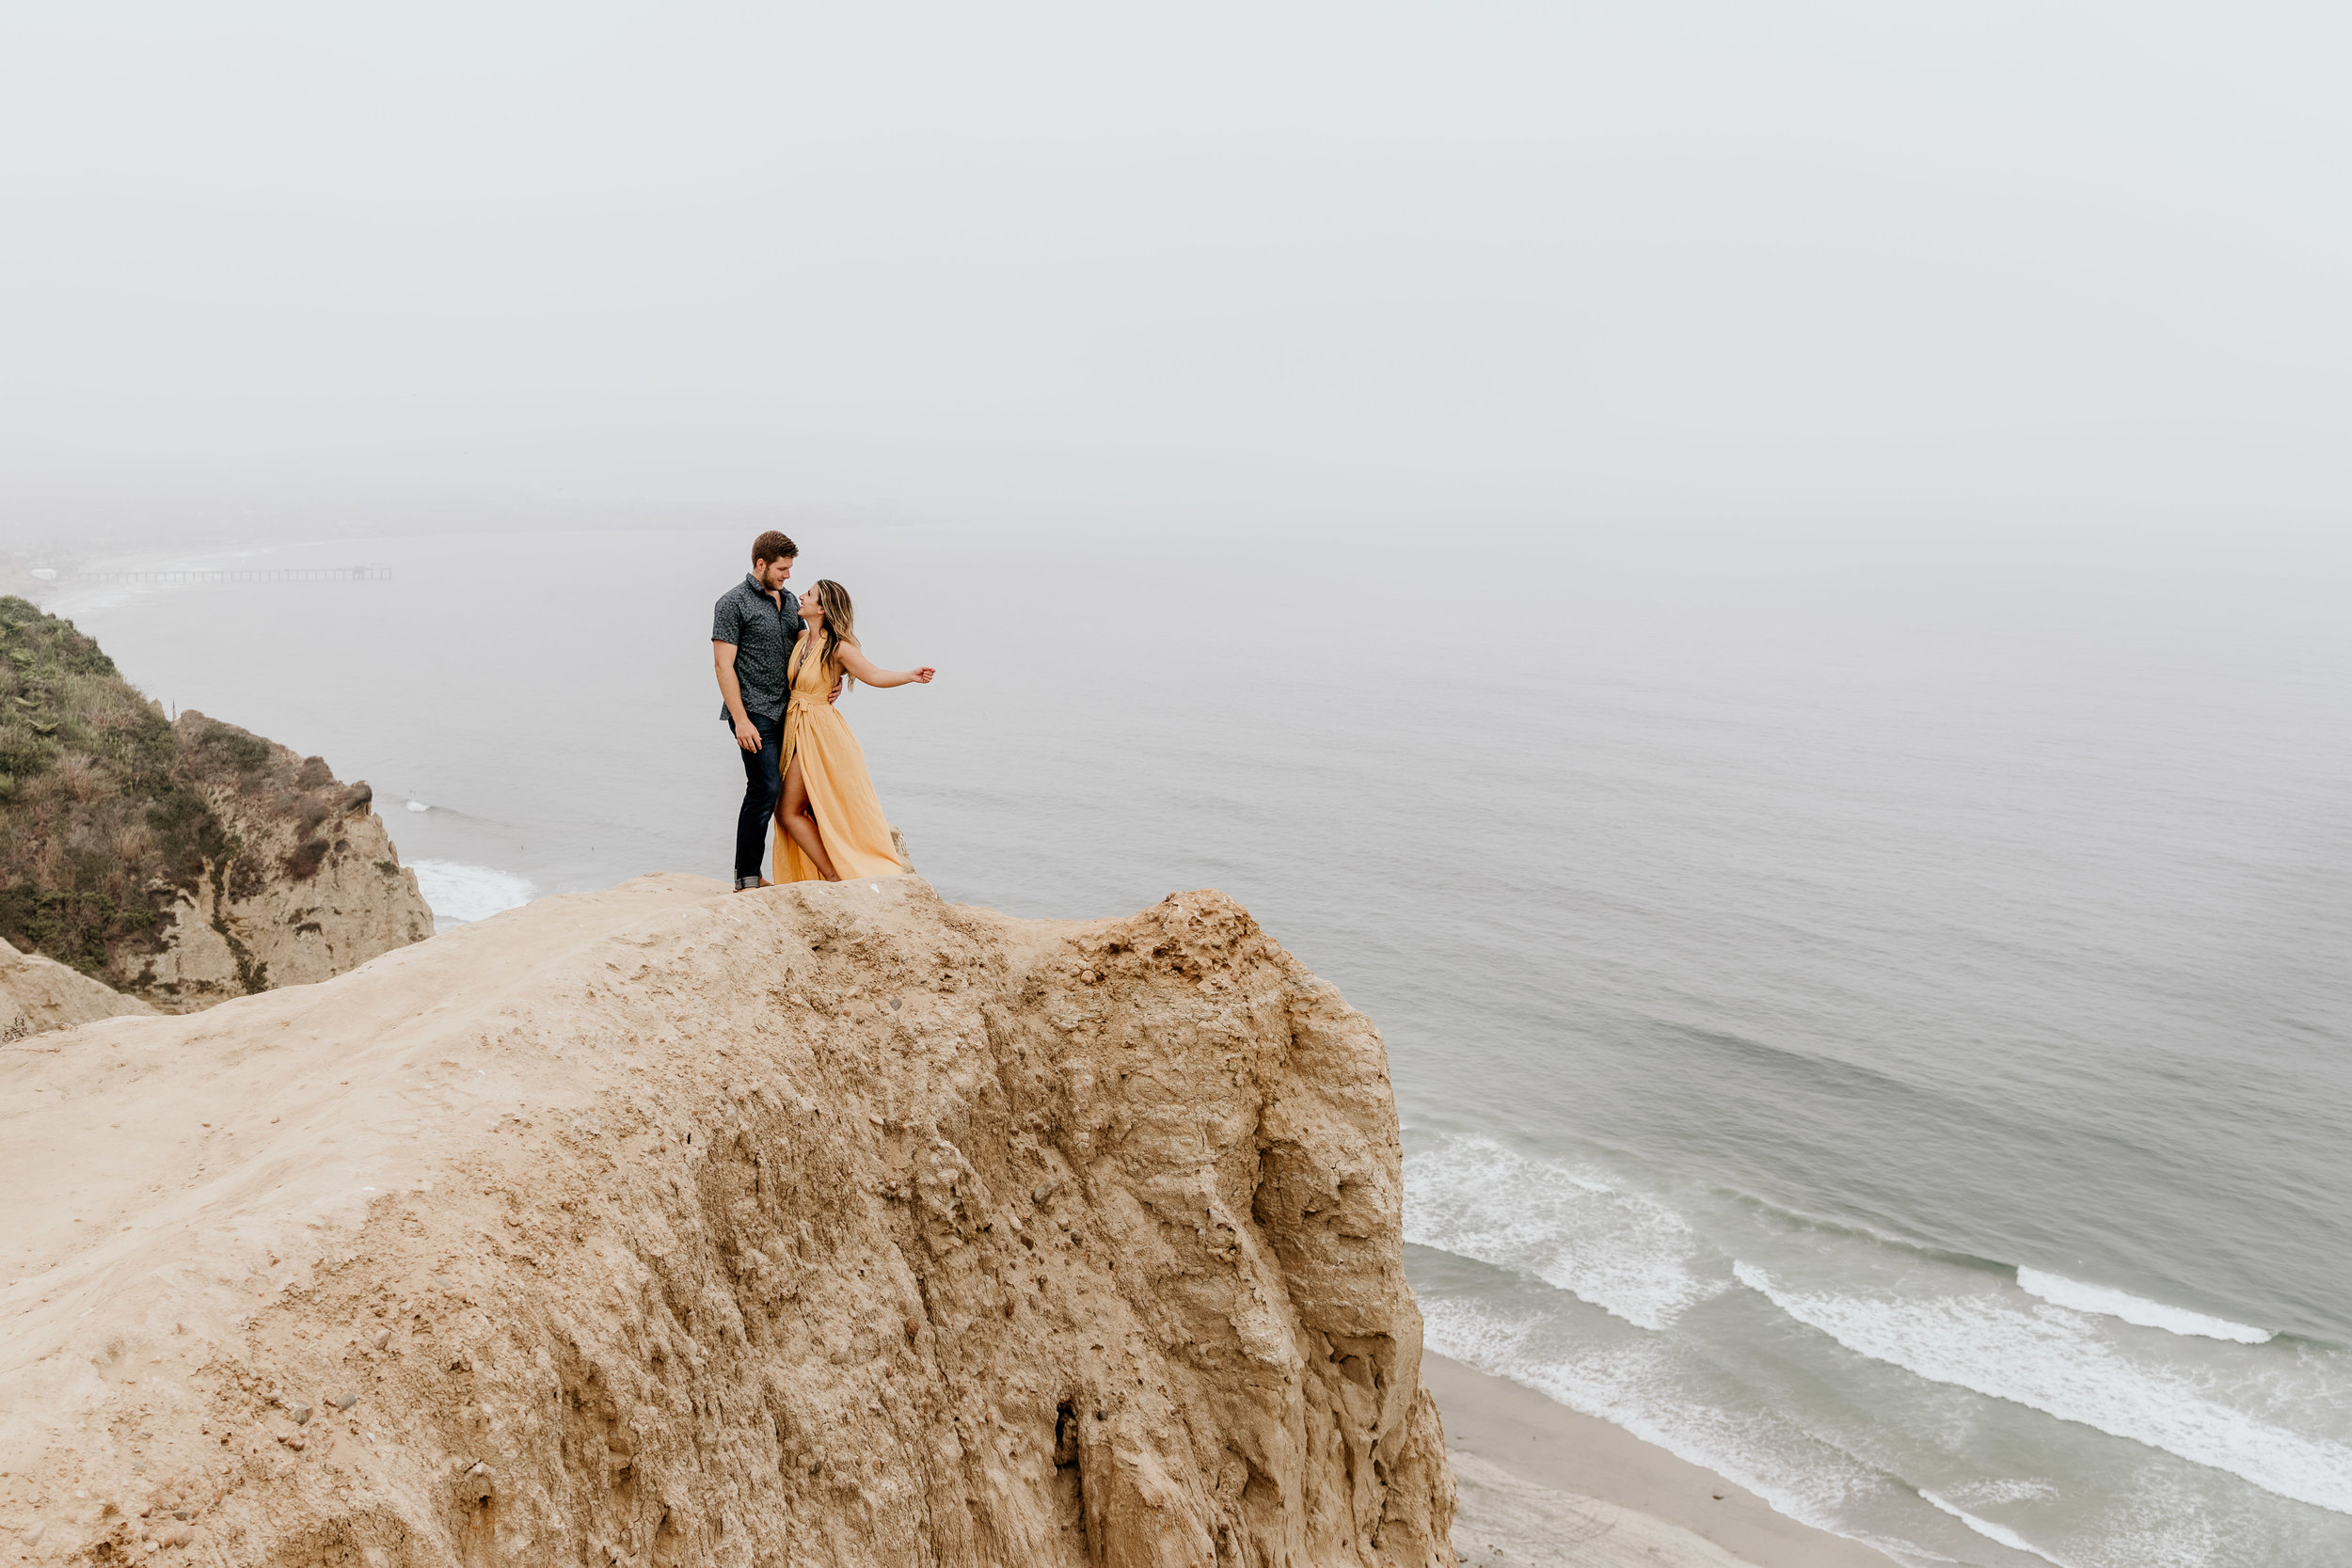 Ho Chi Minh Trail Couples Photography